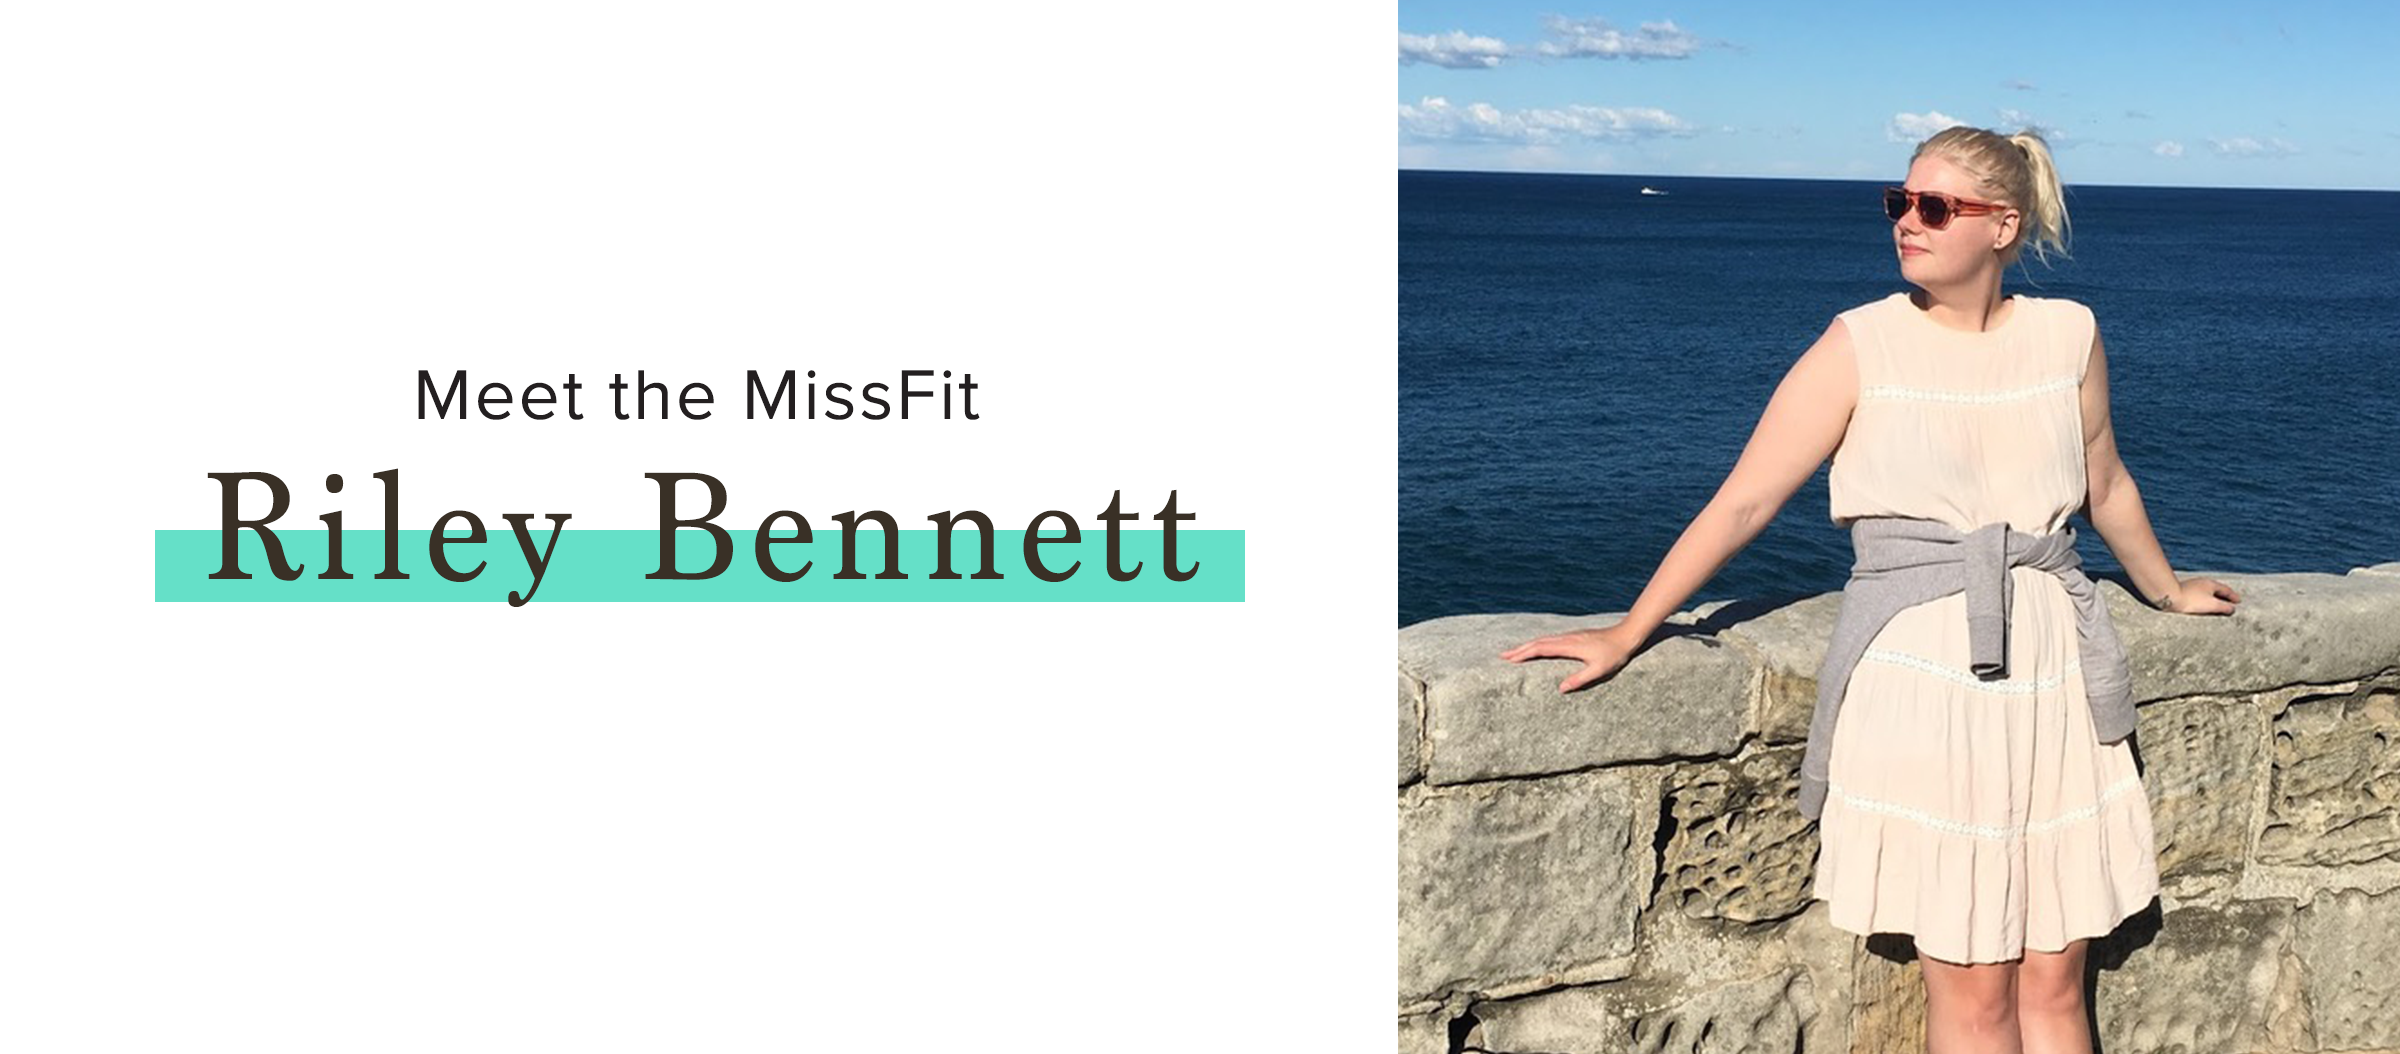 Meet the MissFit, Riley Bennett